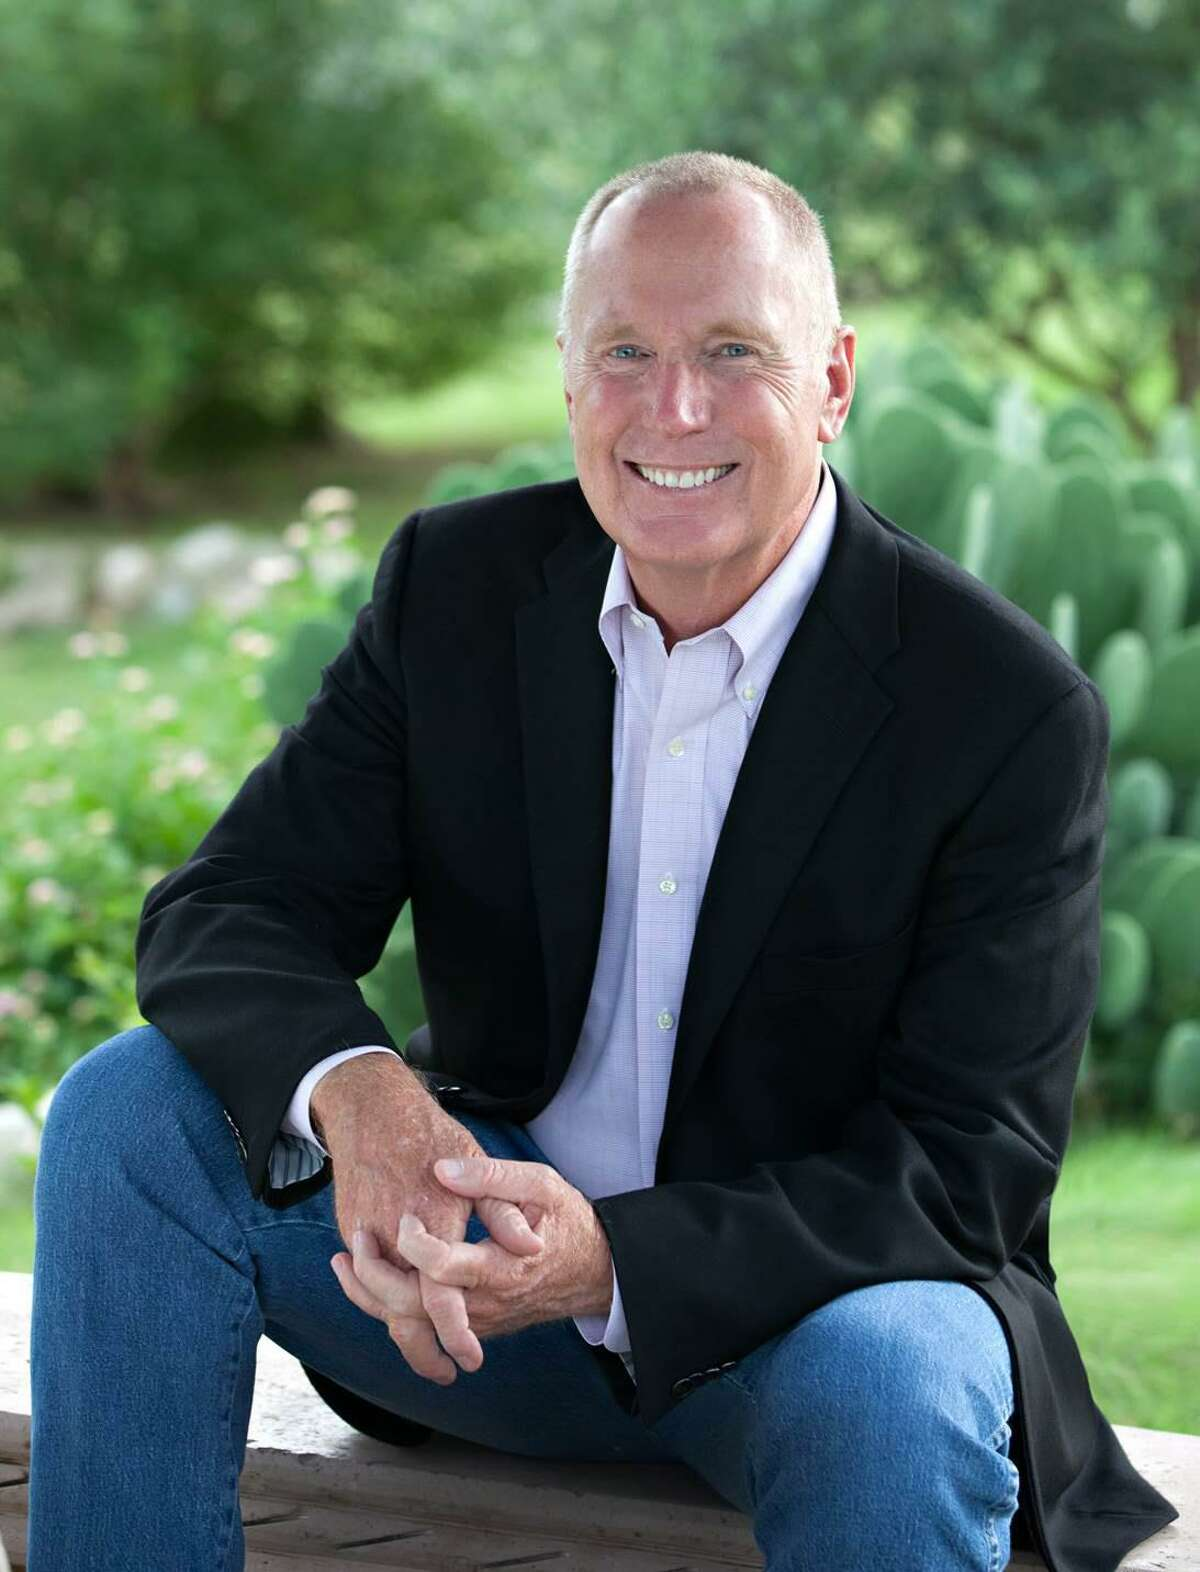 Best-selling author Max Lucado is teaching minister at Oak Hills Church in San Antonio. He recently contracted the coronavirus and is recovering at home.